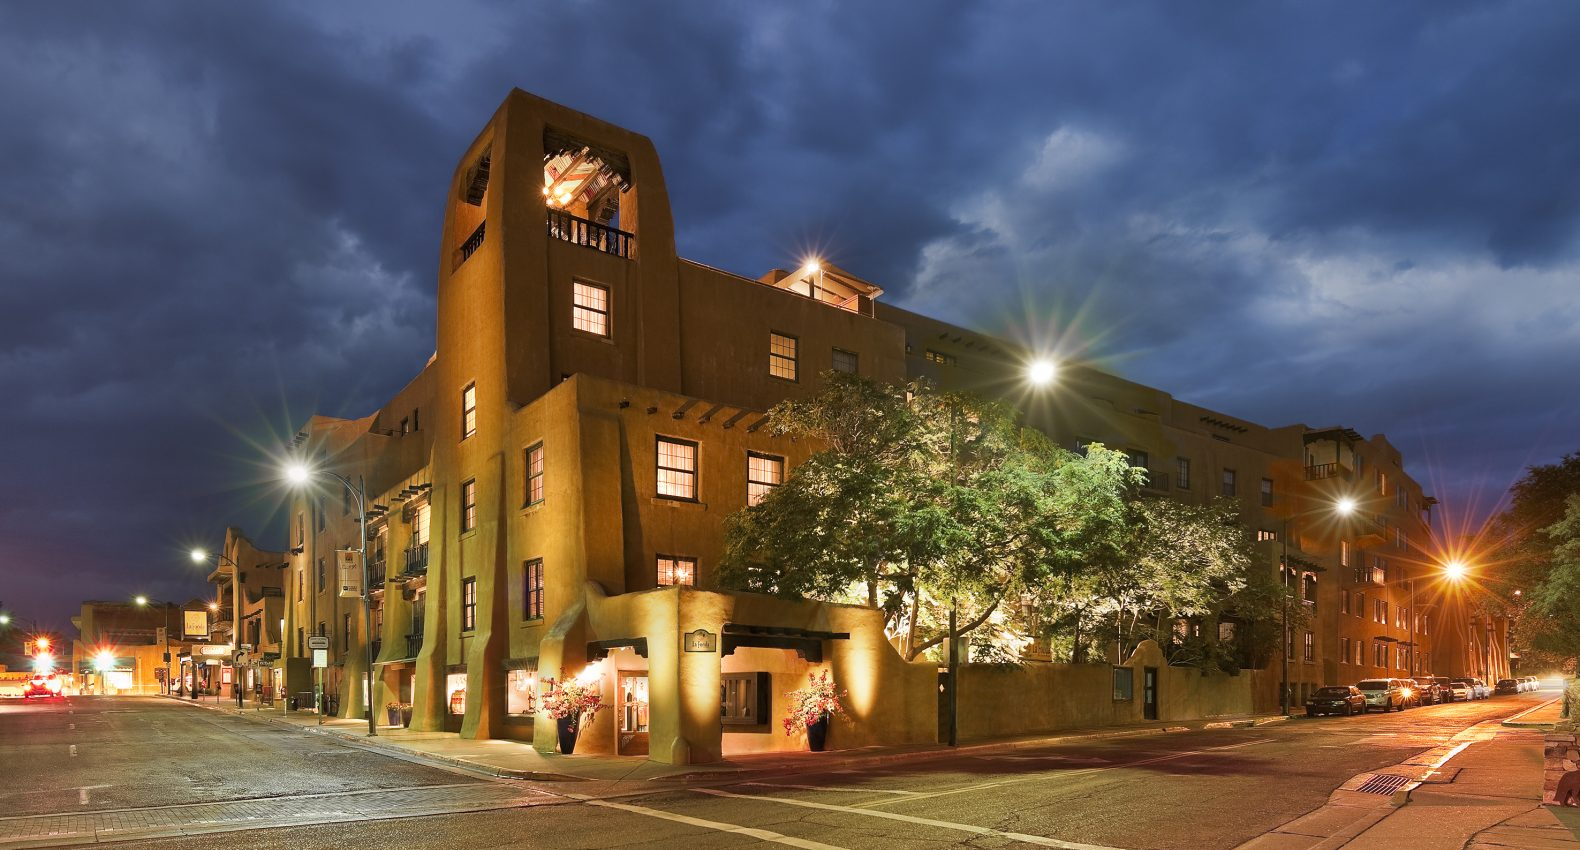 La Fonda hotel is located on the Santa Fe plaza